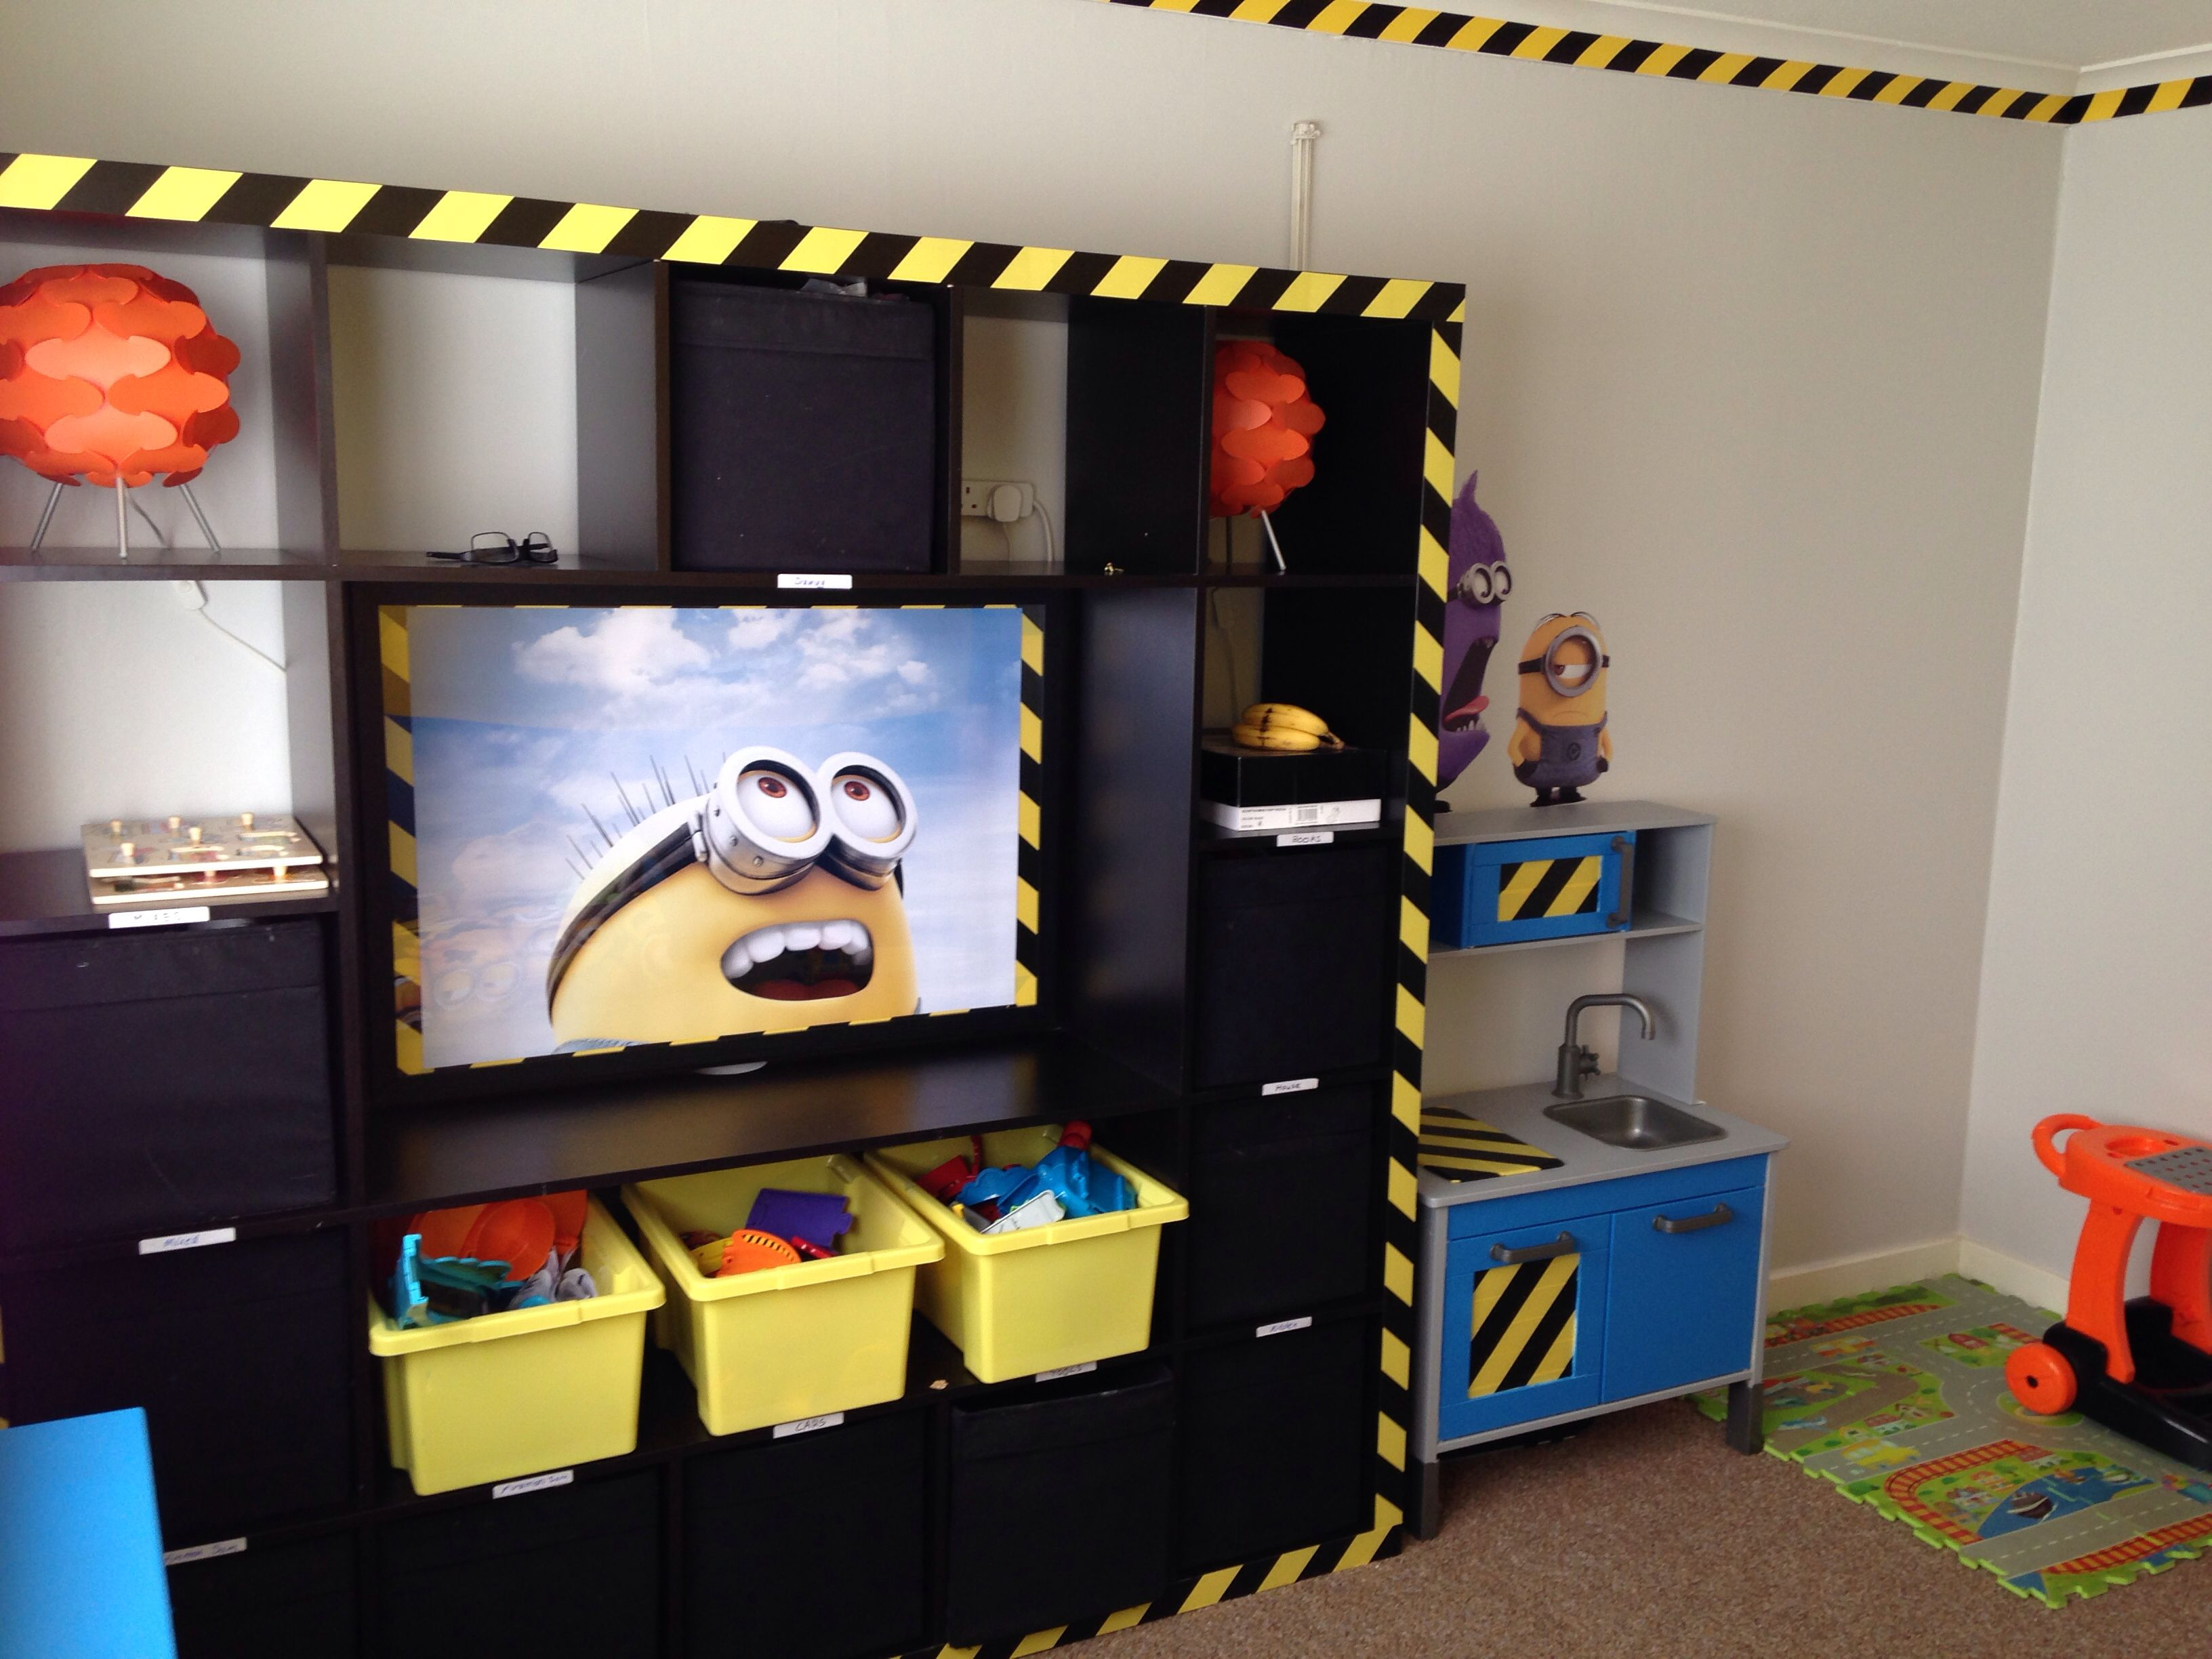 Minion Bedroom on Pinterest | Minion Room, Despicable Me ...